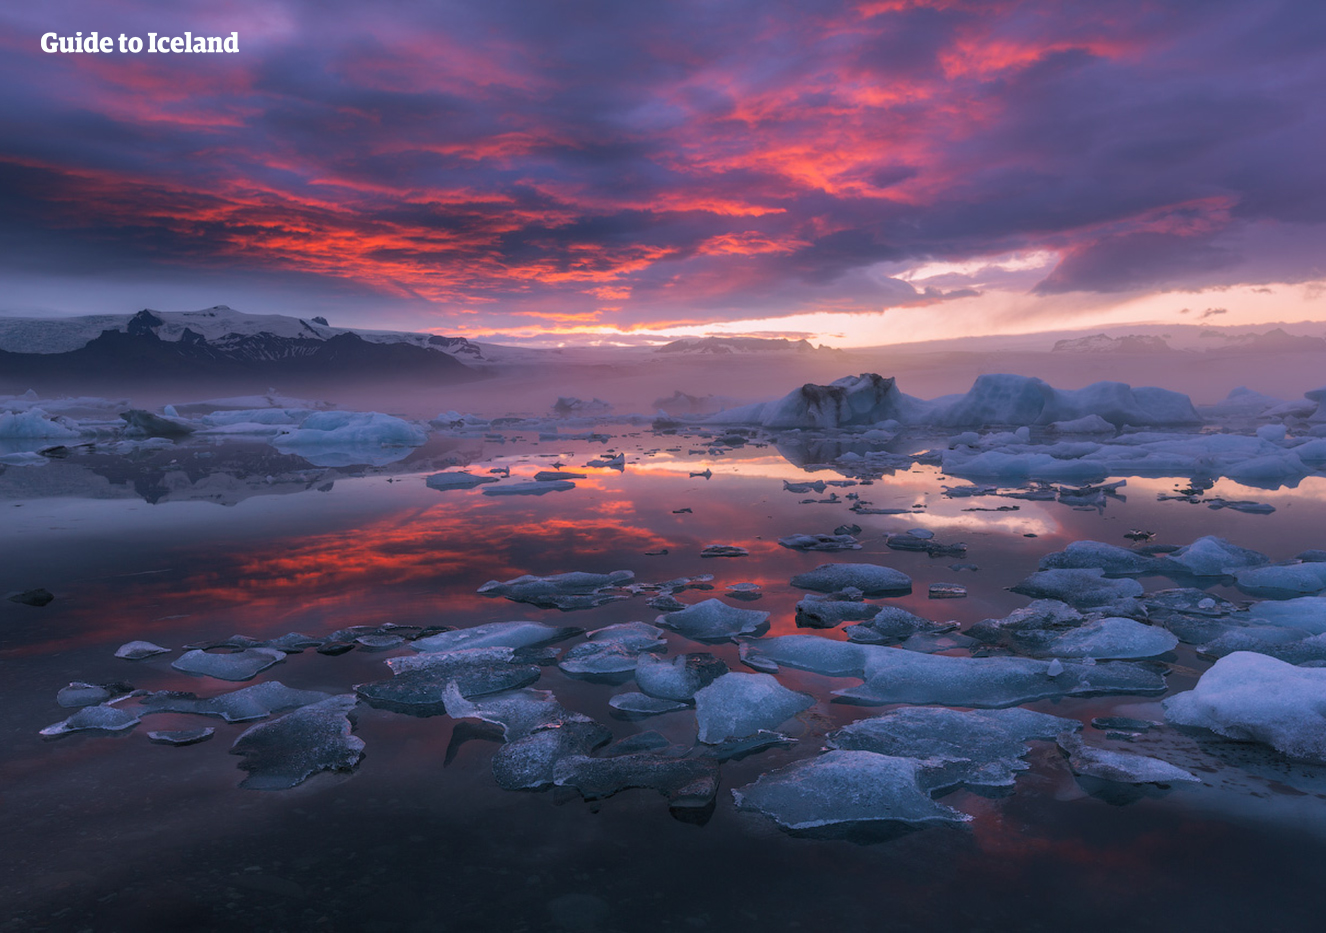 Guided 12 Day Summer Vacation Package of the Complete Ring Road of Iceland & Snaefellsnes Peninsula - day 4